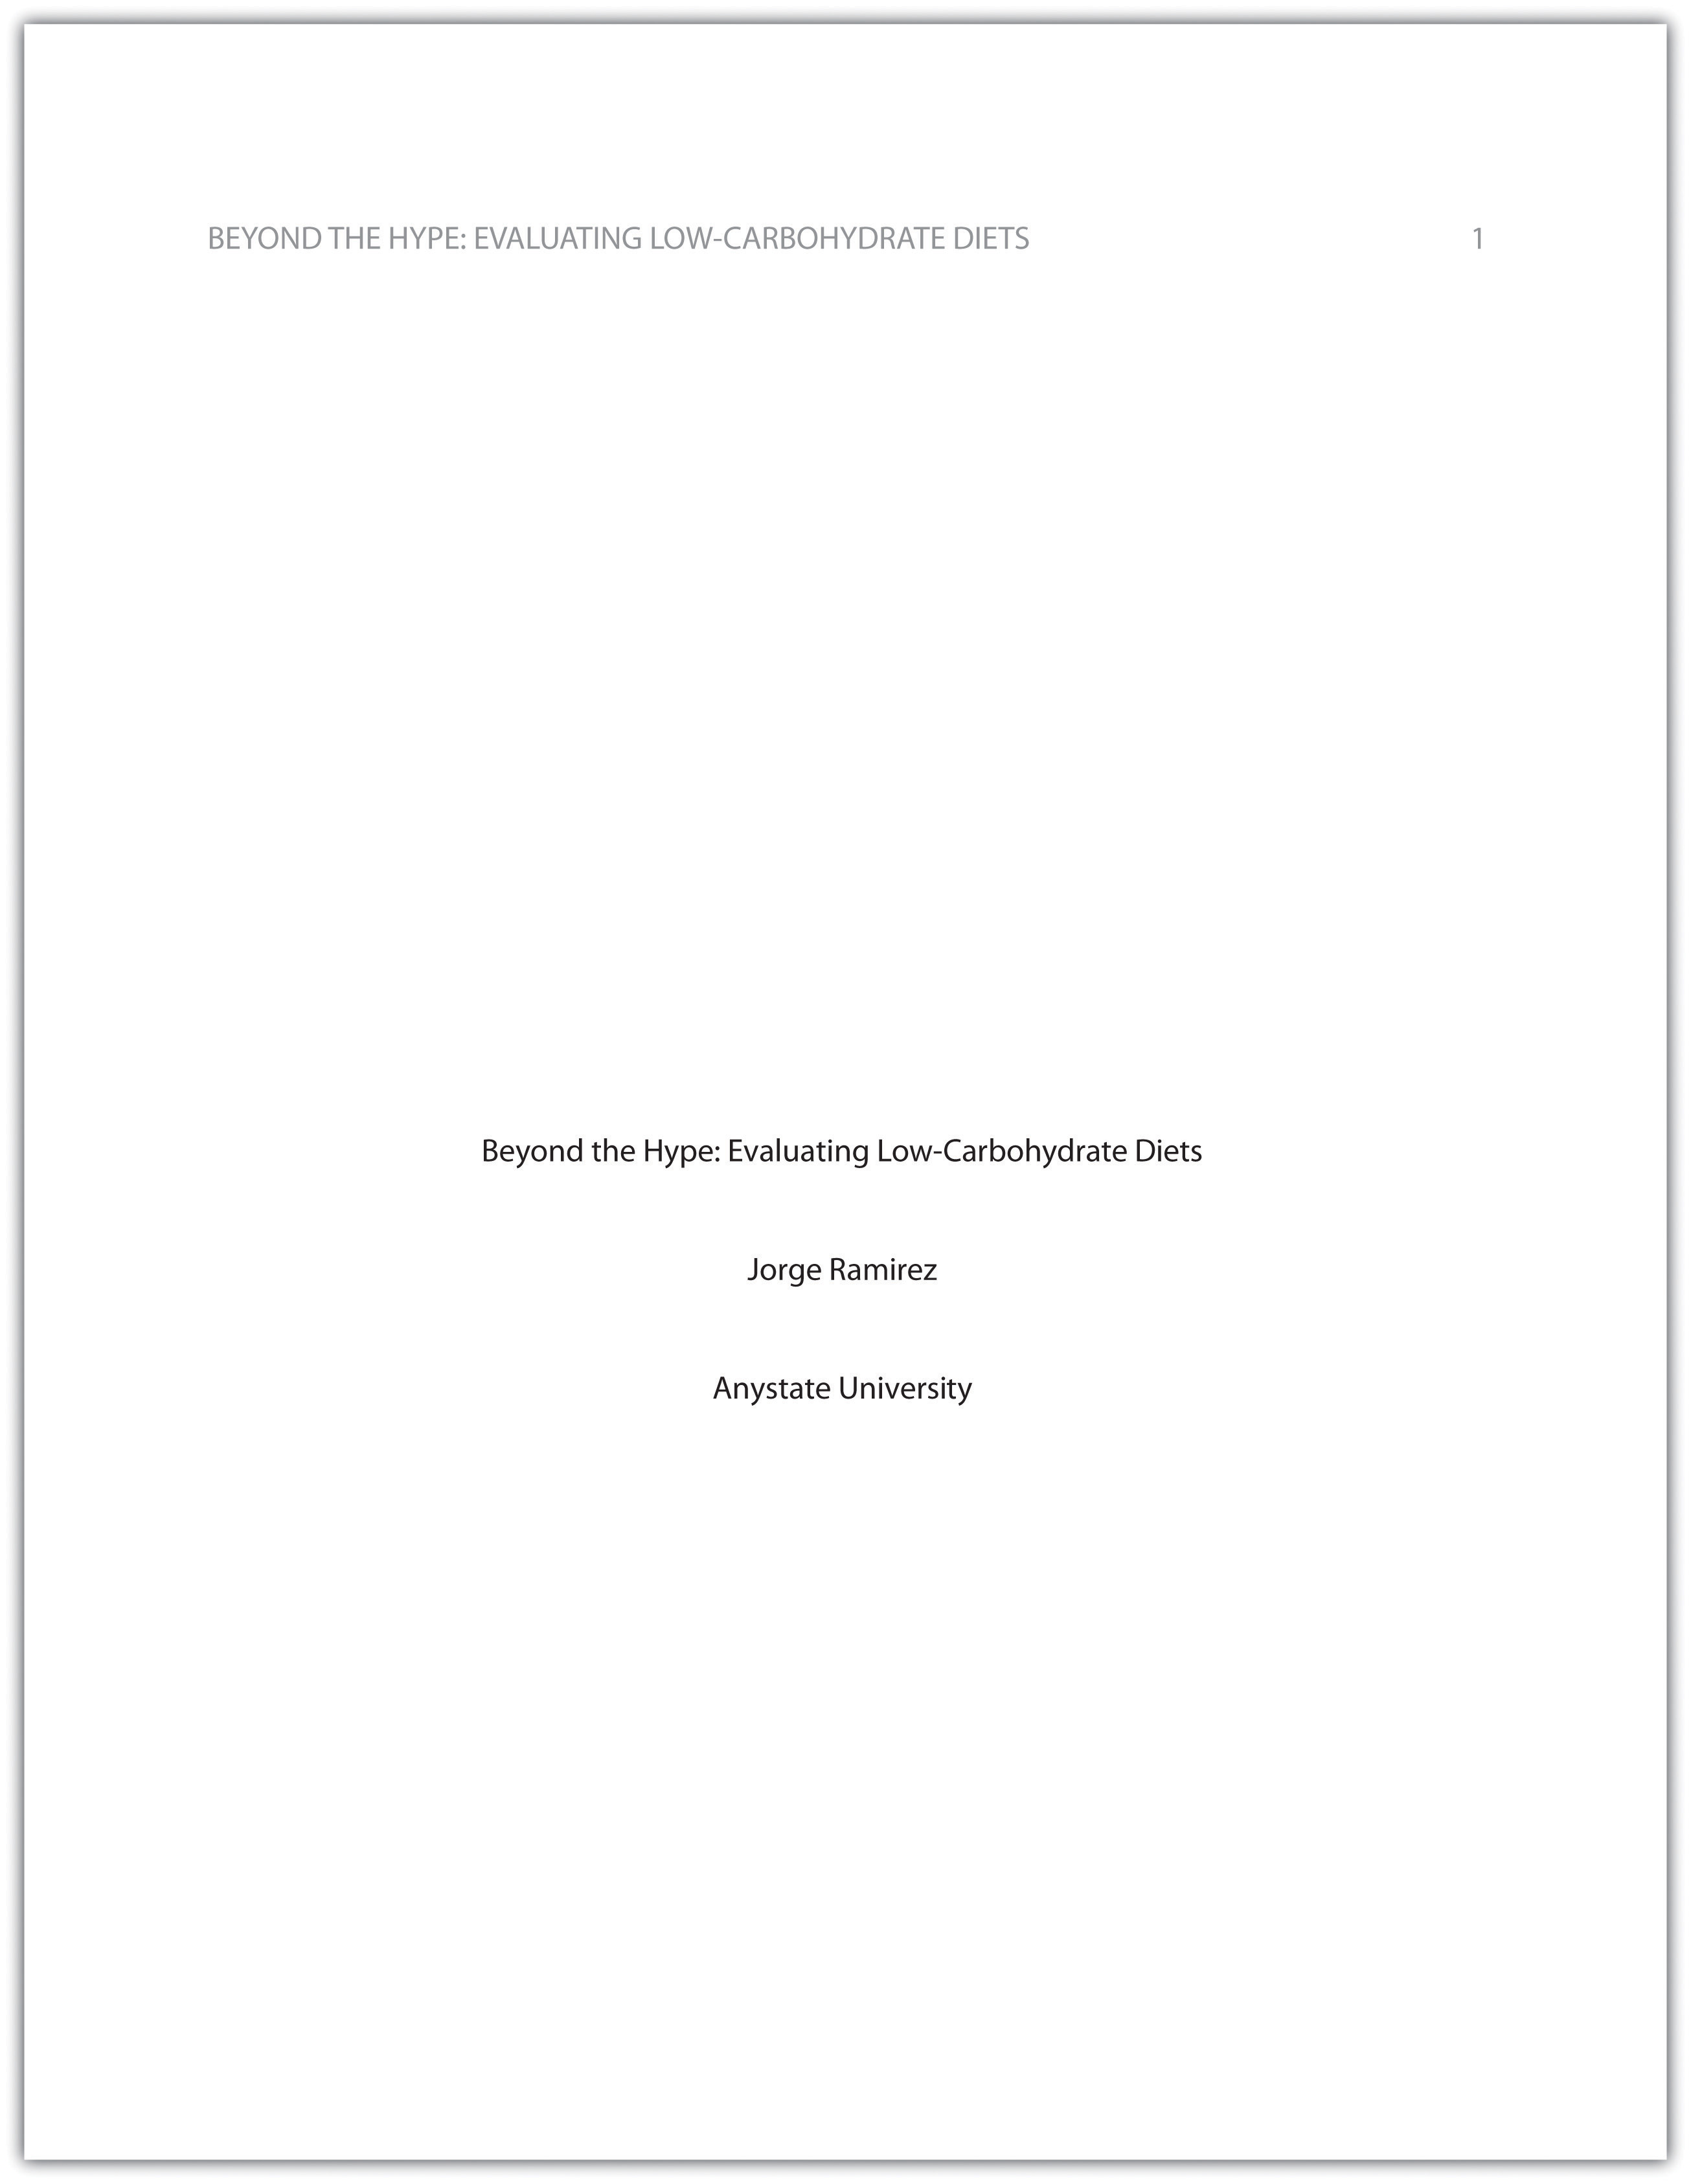 002 Research Paper Cover Page Apa Excellent Template Layout Format Sample Title Full